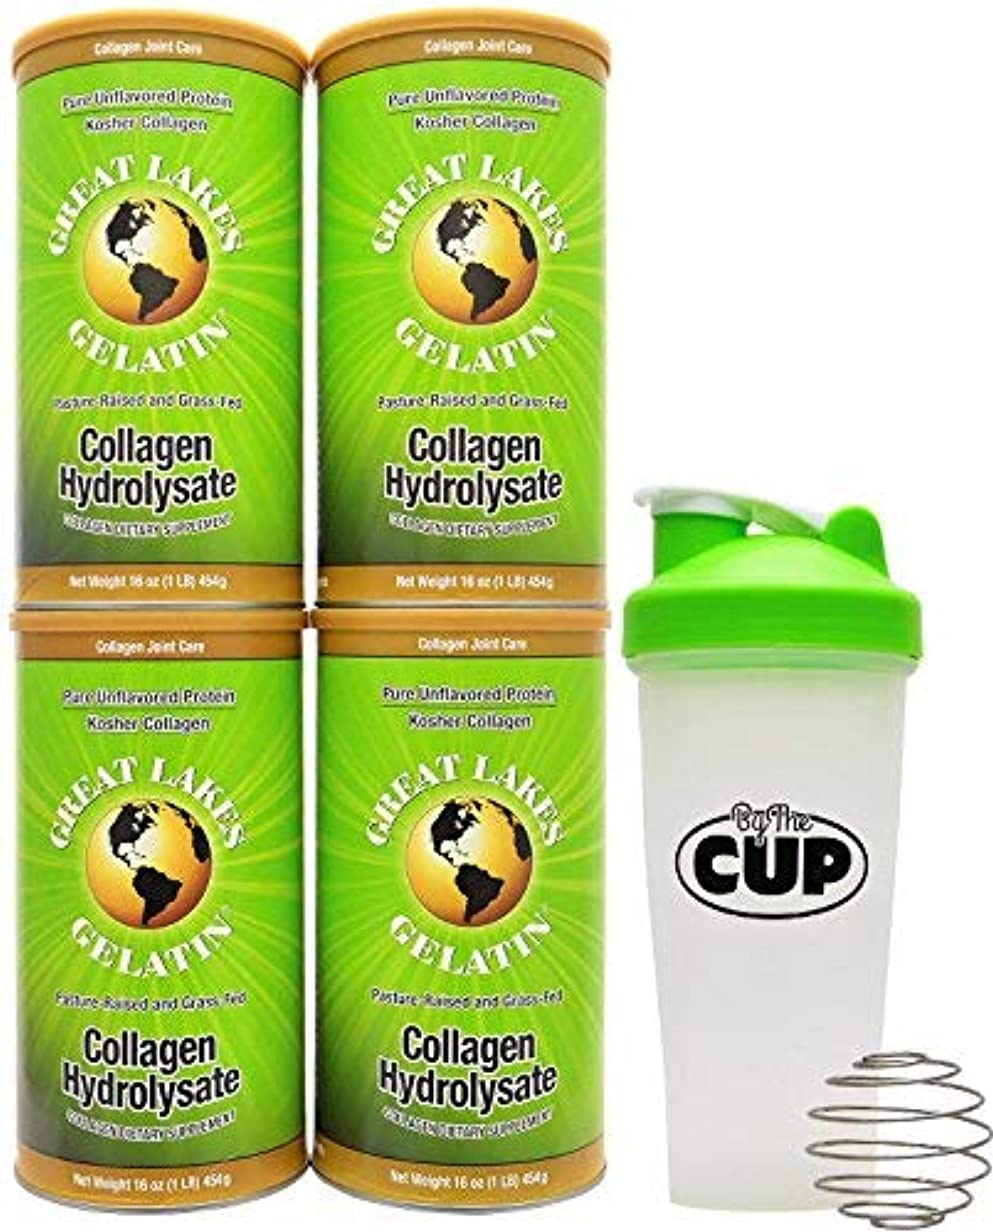 数字閃光教養があるGreat Lakes Gelatin 4 Collagen Hydrolysate 16-Ounce Cans and By The Cup Shaker Combo [並行輸入品]